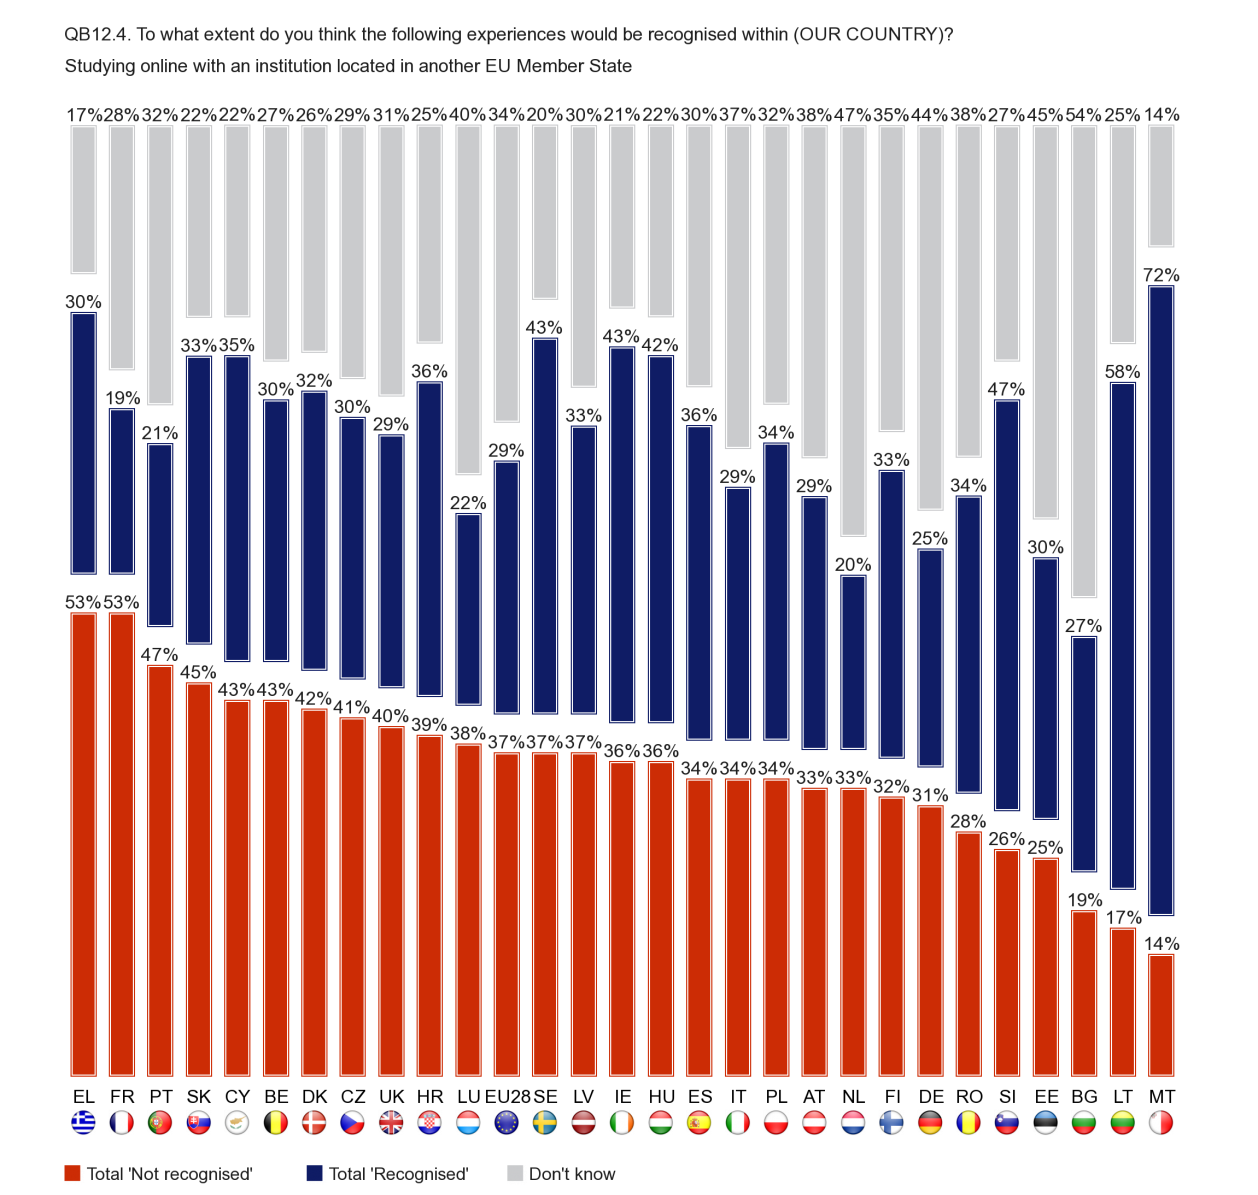 Malta has by far the highest proportion of respondents who say that studying online with an institution located in another EU Member State would be recognised in their own country (78% say this would